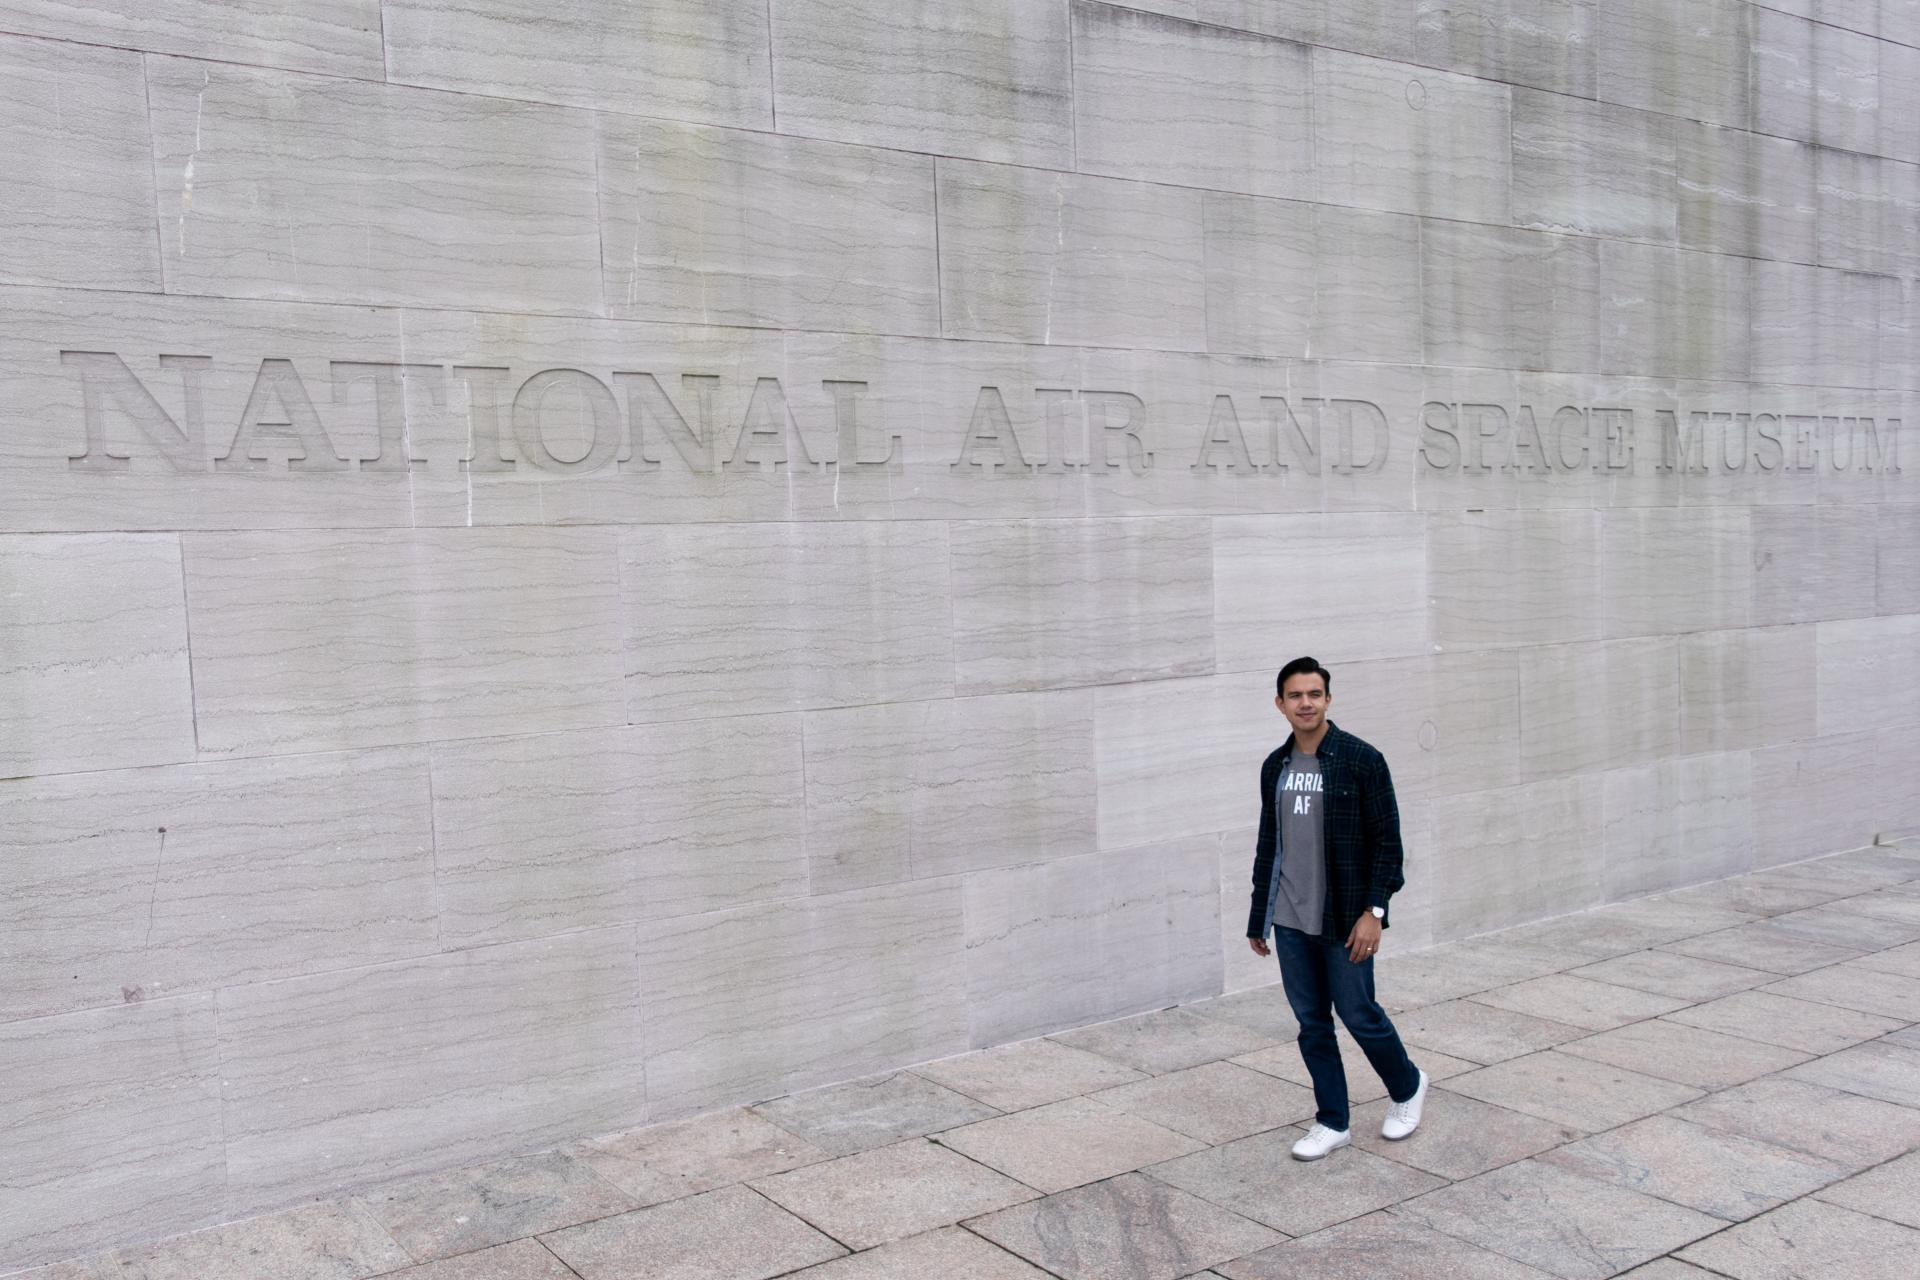 three days in Washington D.C.